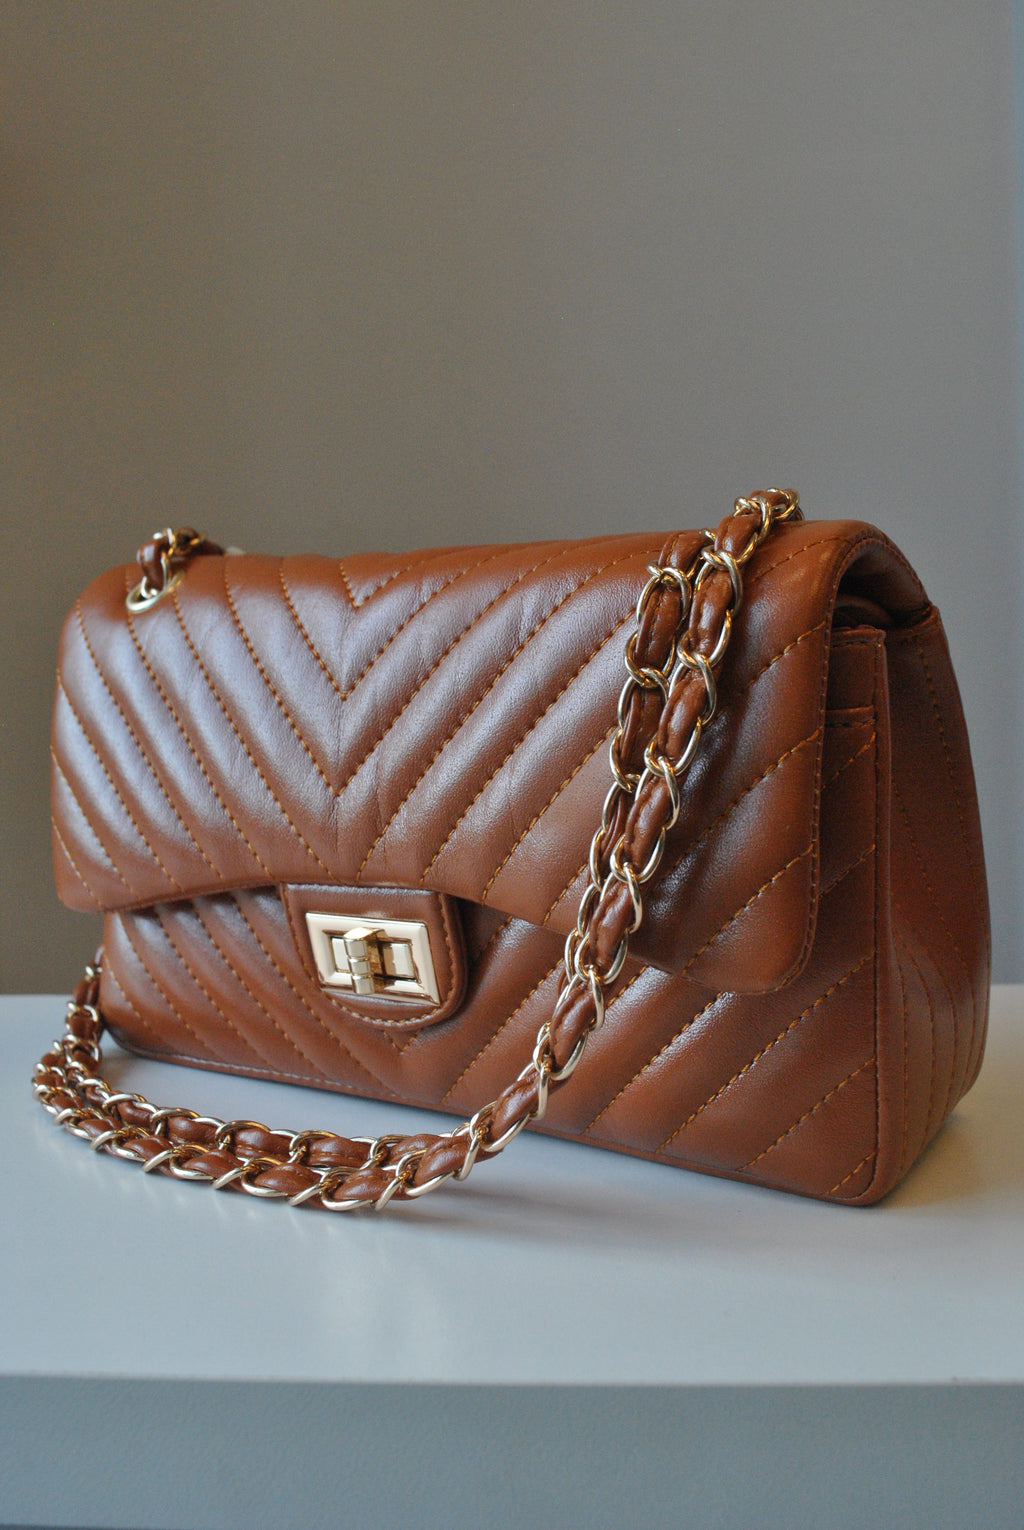 CARAMEL GUILTER SHOULDER BAG